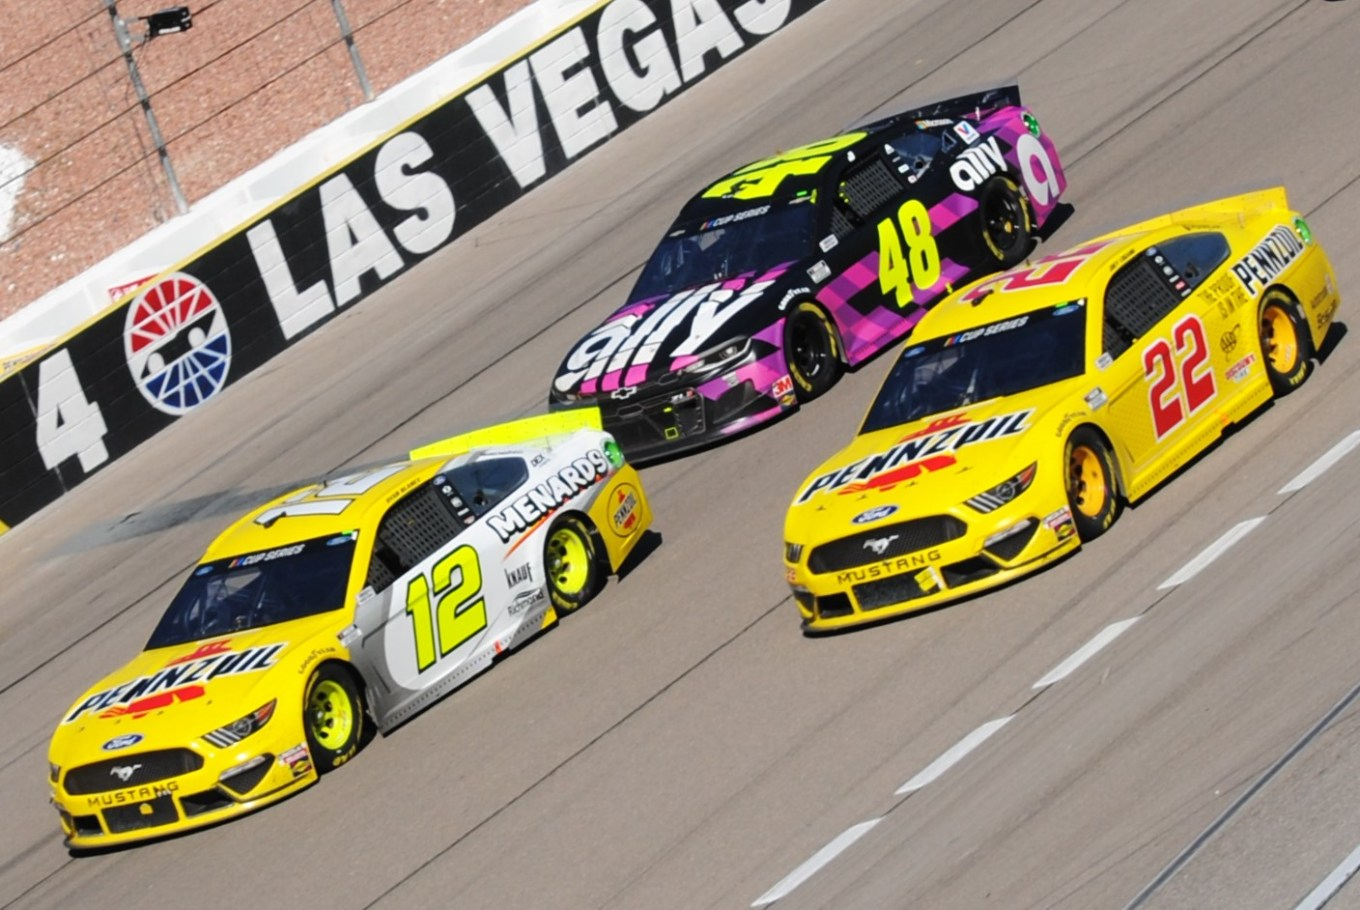 Chris Madrid Las Vegas I 2020 Blaney Logano Johnson